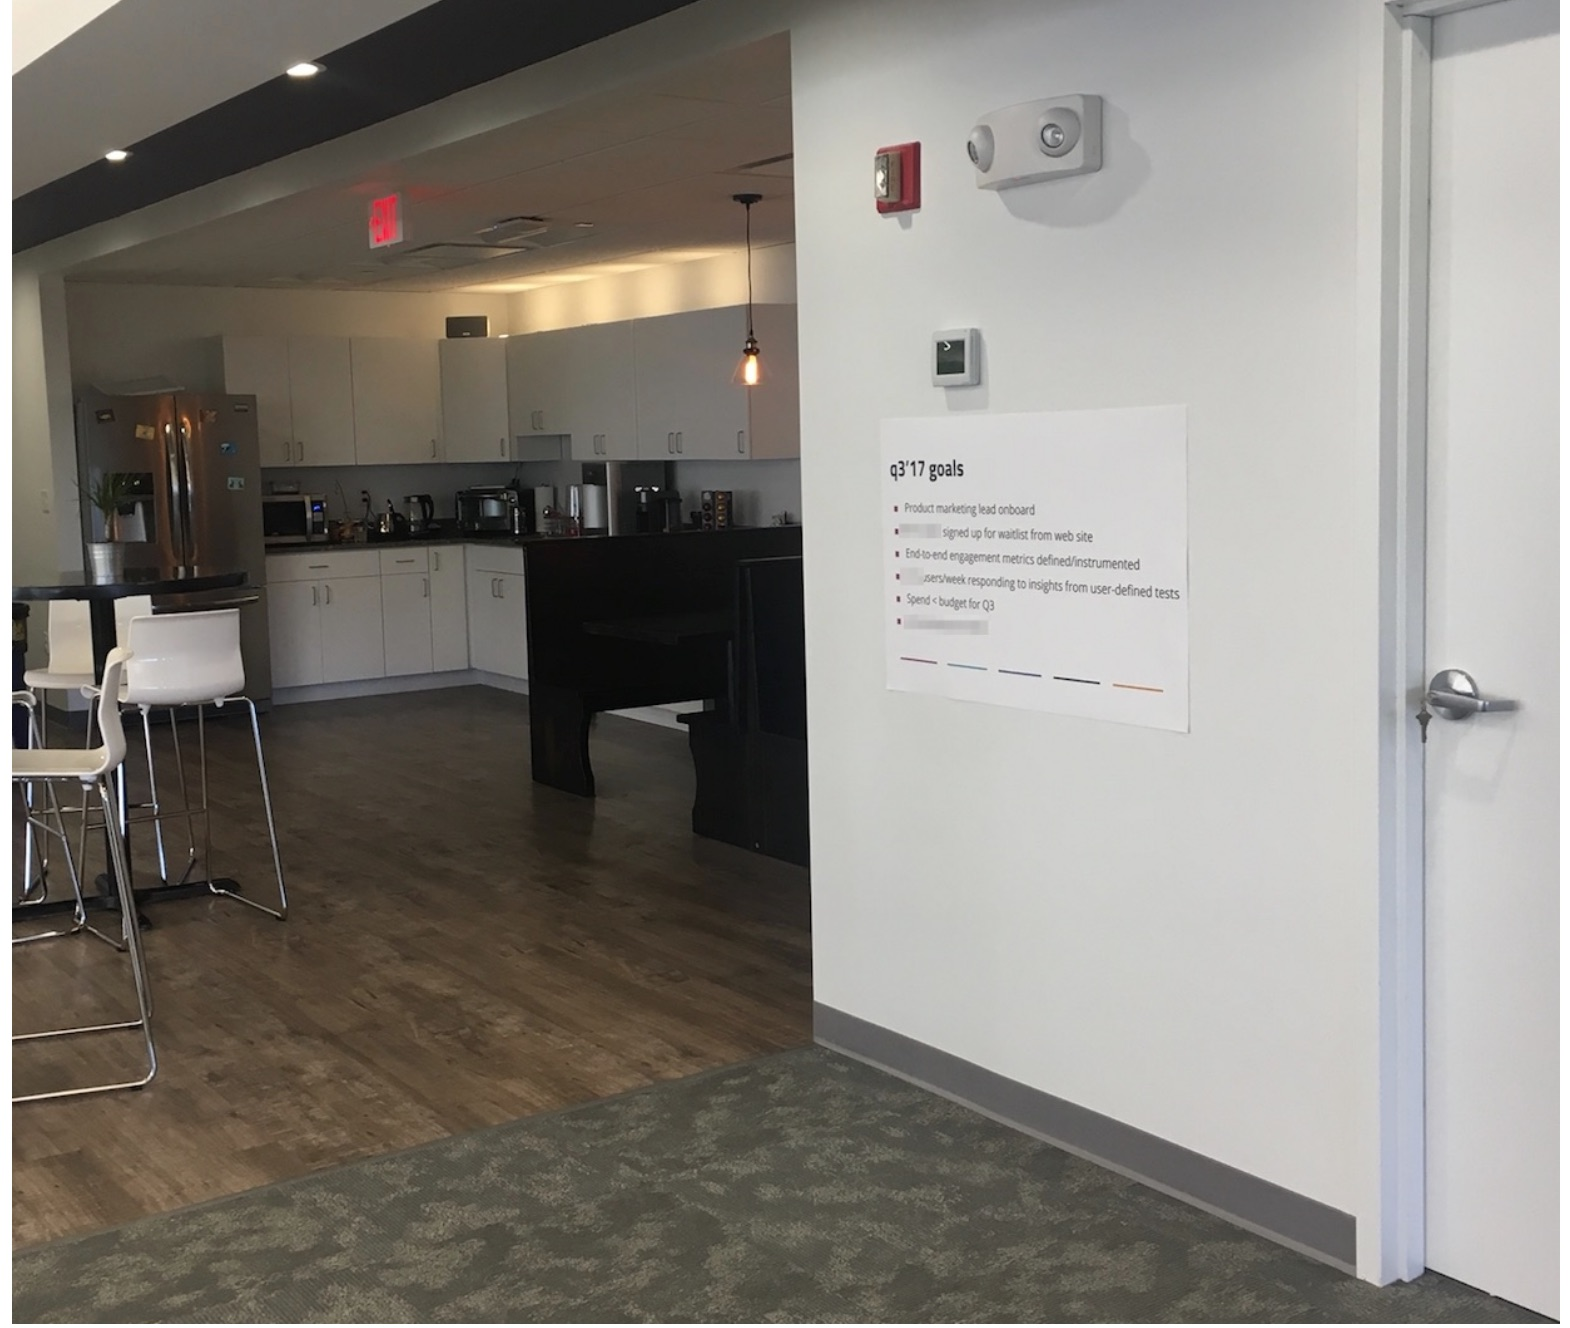 A kitchen and eating area in an office building.